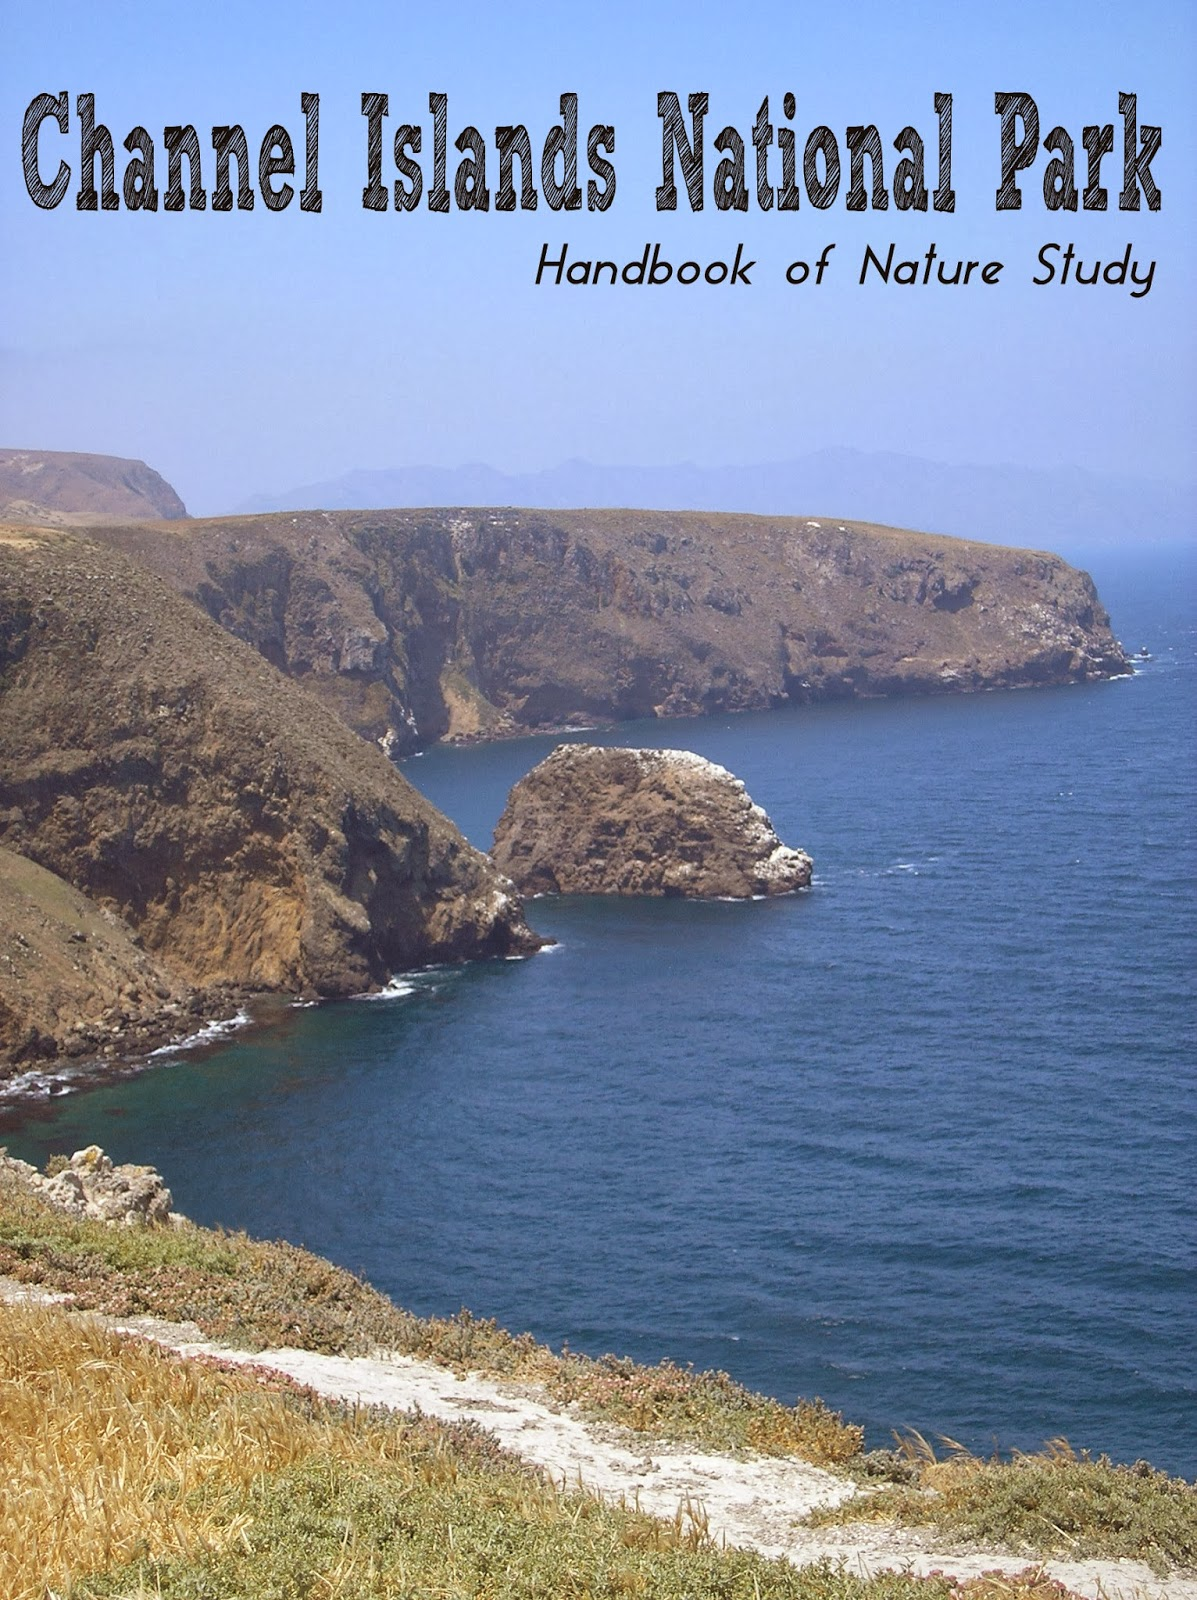 http://handbookofnaturestudy.blogspot.com/2008/06/channel-islands-national-park.html